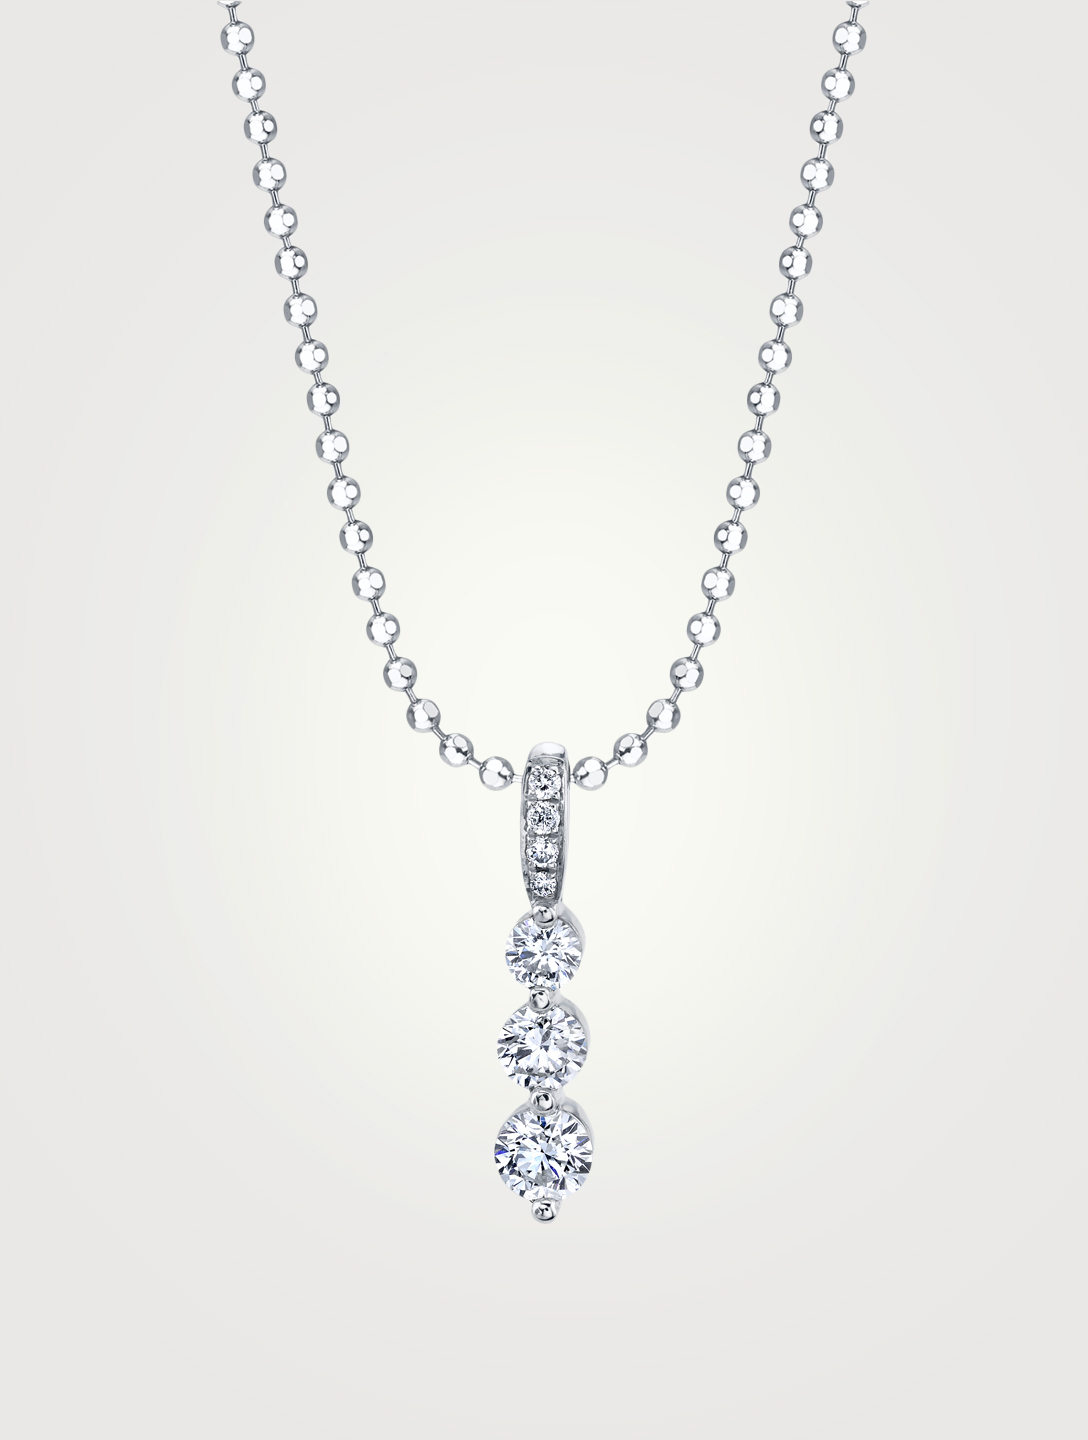 ANITA KO Petit collier Twiggy en or blanc à 18 ct serti de diamants Femmes Argent